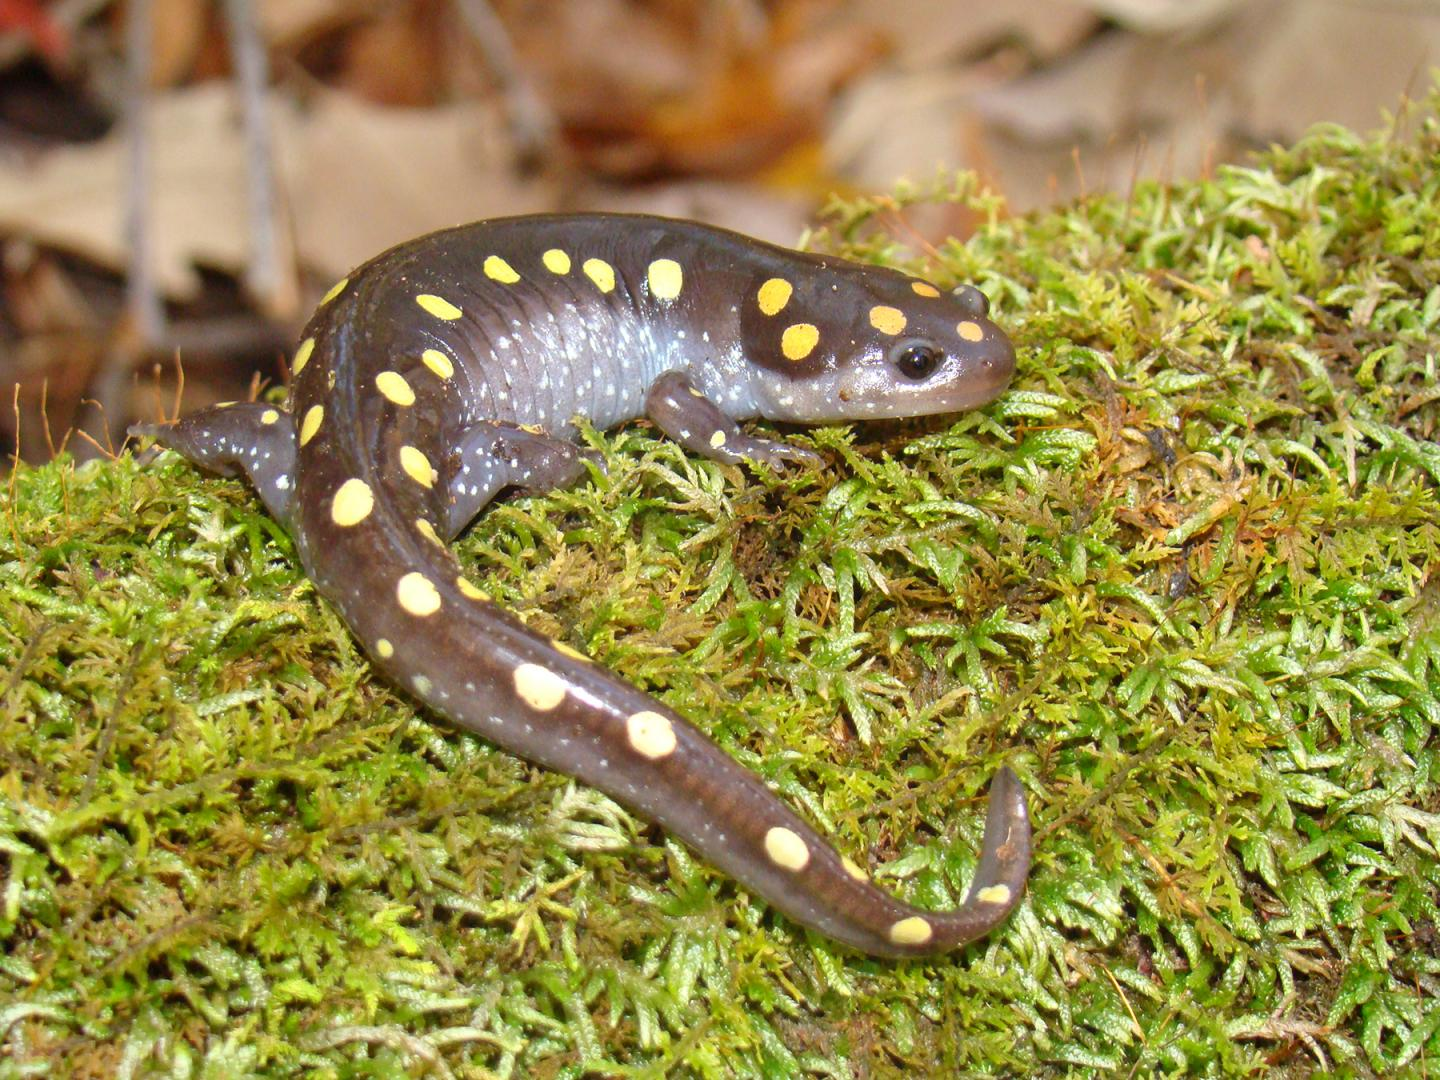 The Spotted Salamander or Yellow Spotted Salamander